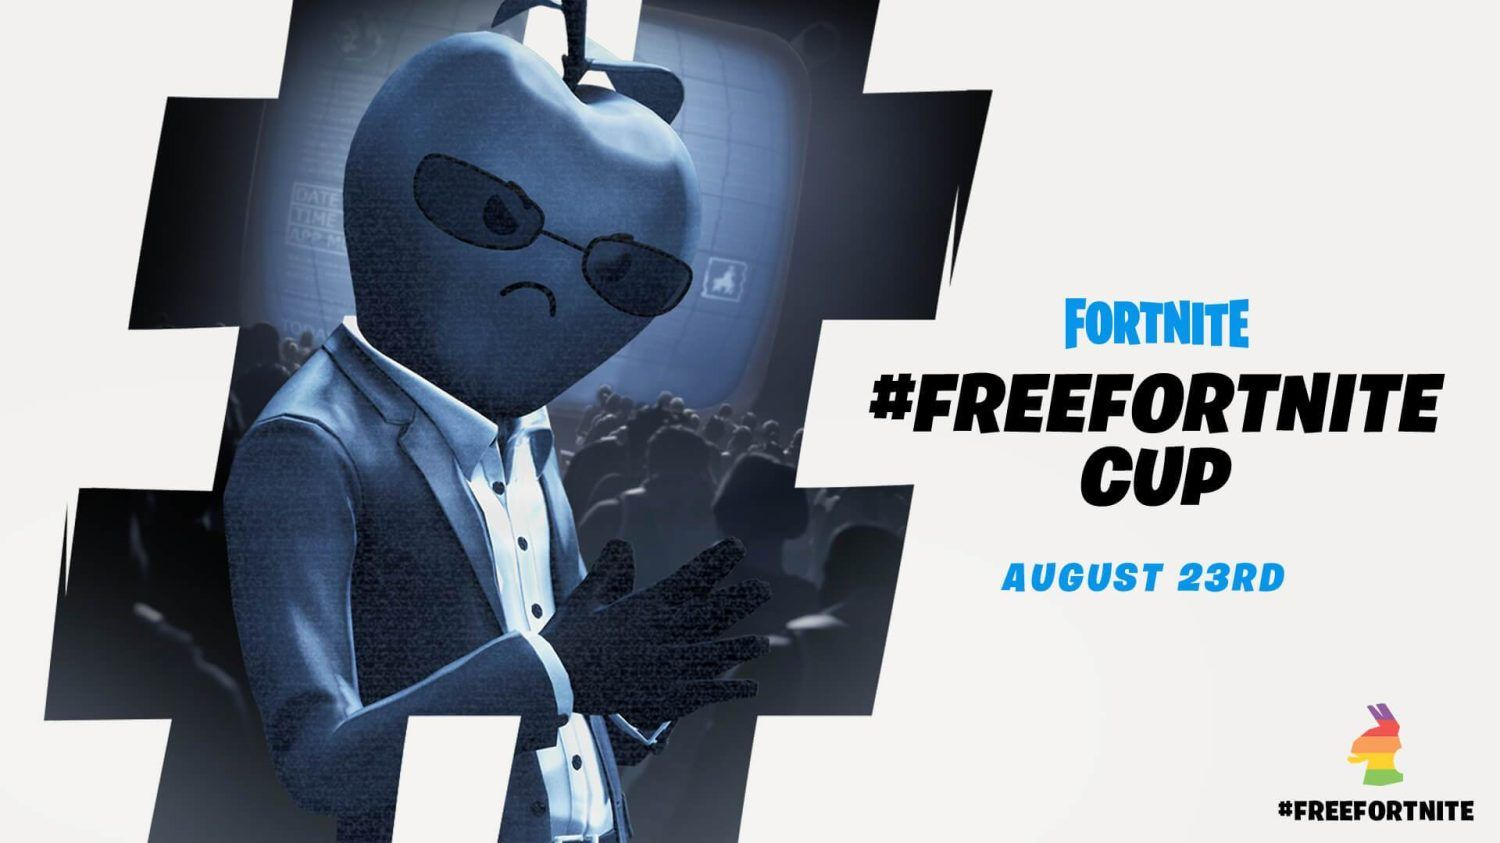 Epic Games announces 'FreeFortnite' tournament with non-Apple devices as prizes